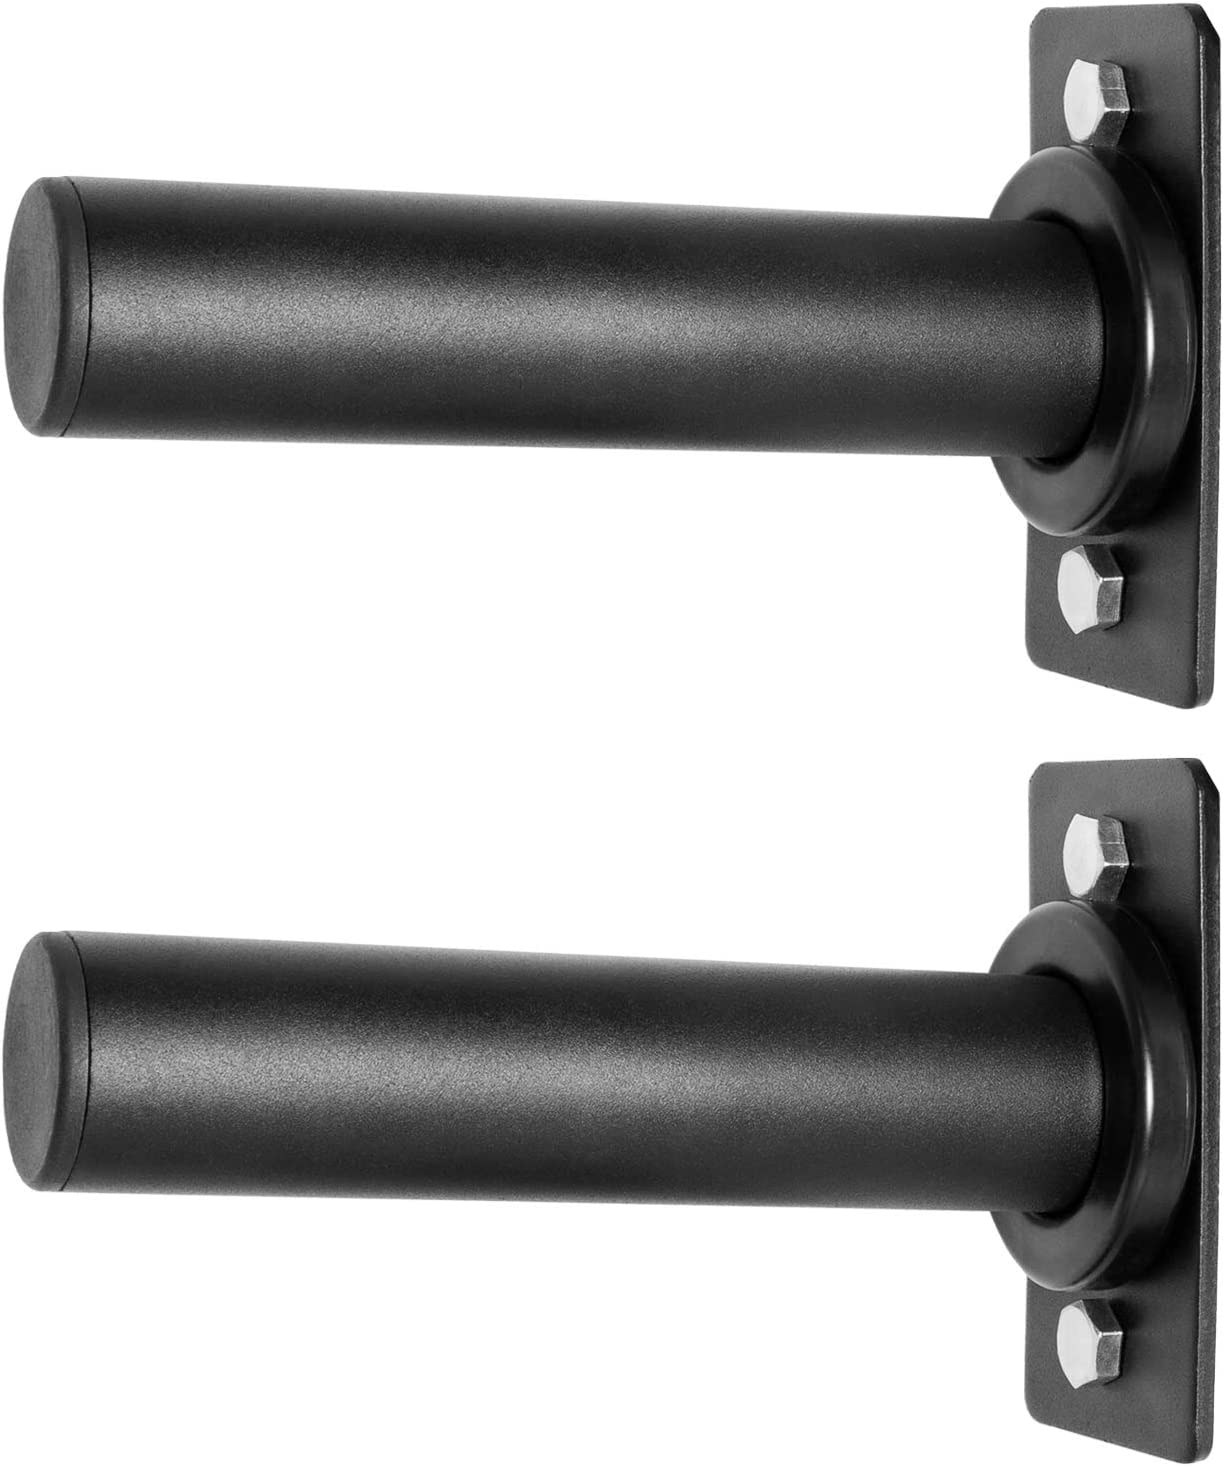 """RIGERS Wall Mounted Olympic Weight Plate Holder - Fits 2"""" Olympic Weight Plates (Pair) : Sports & Outdoors"""